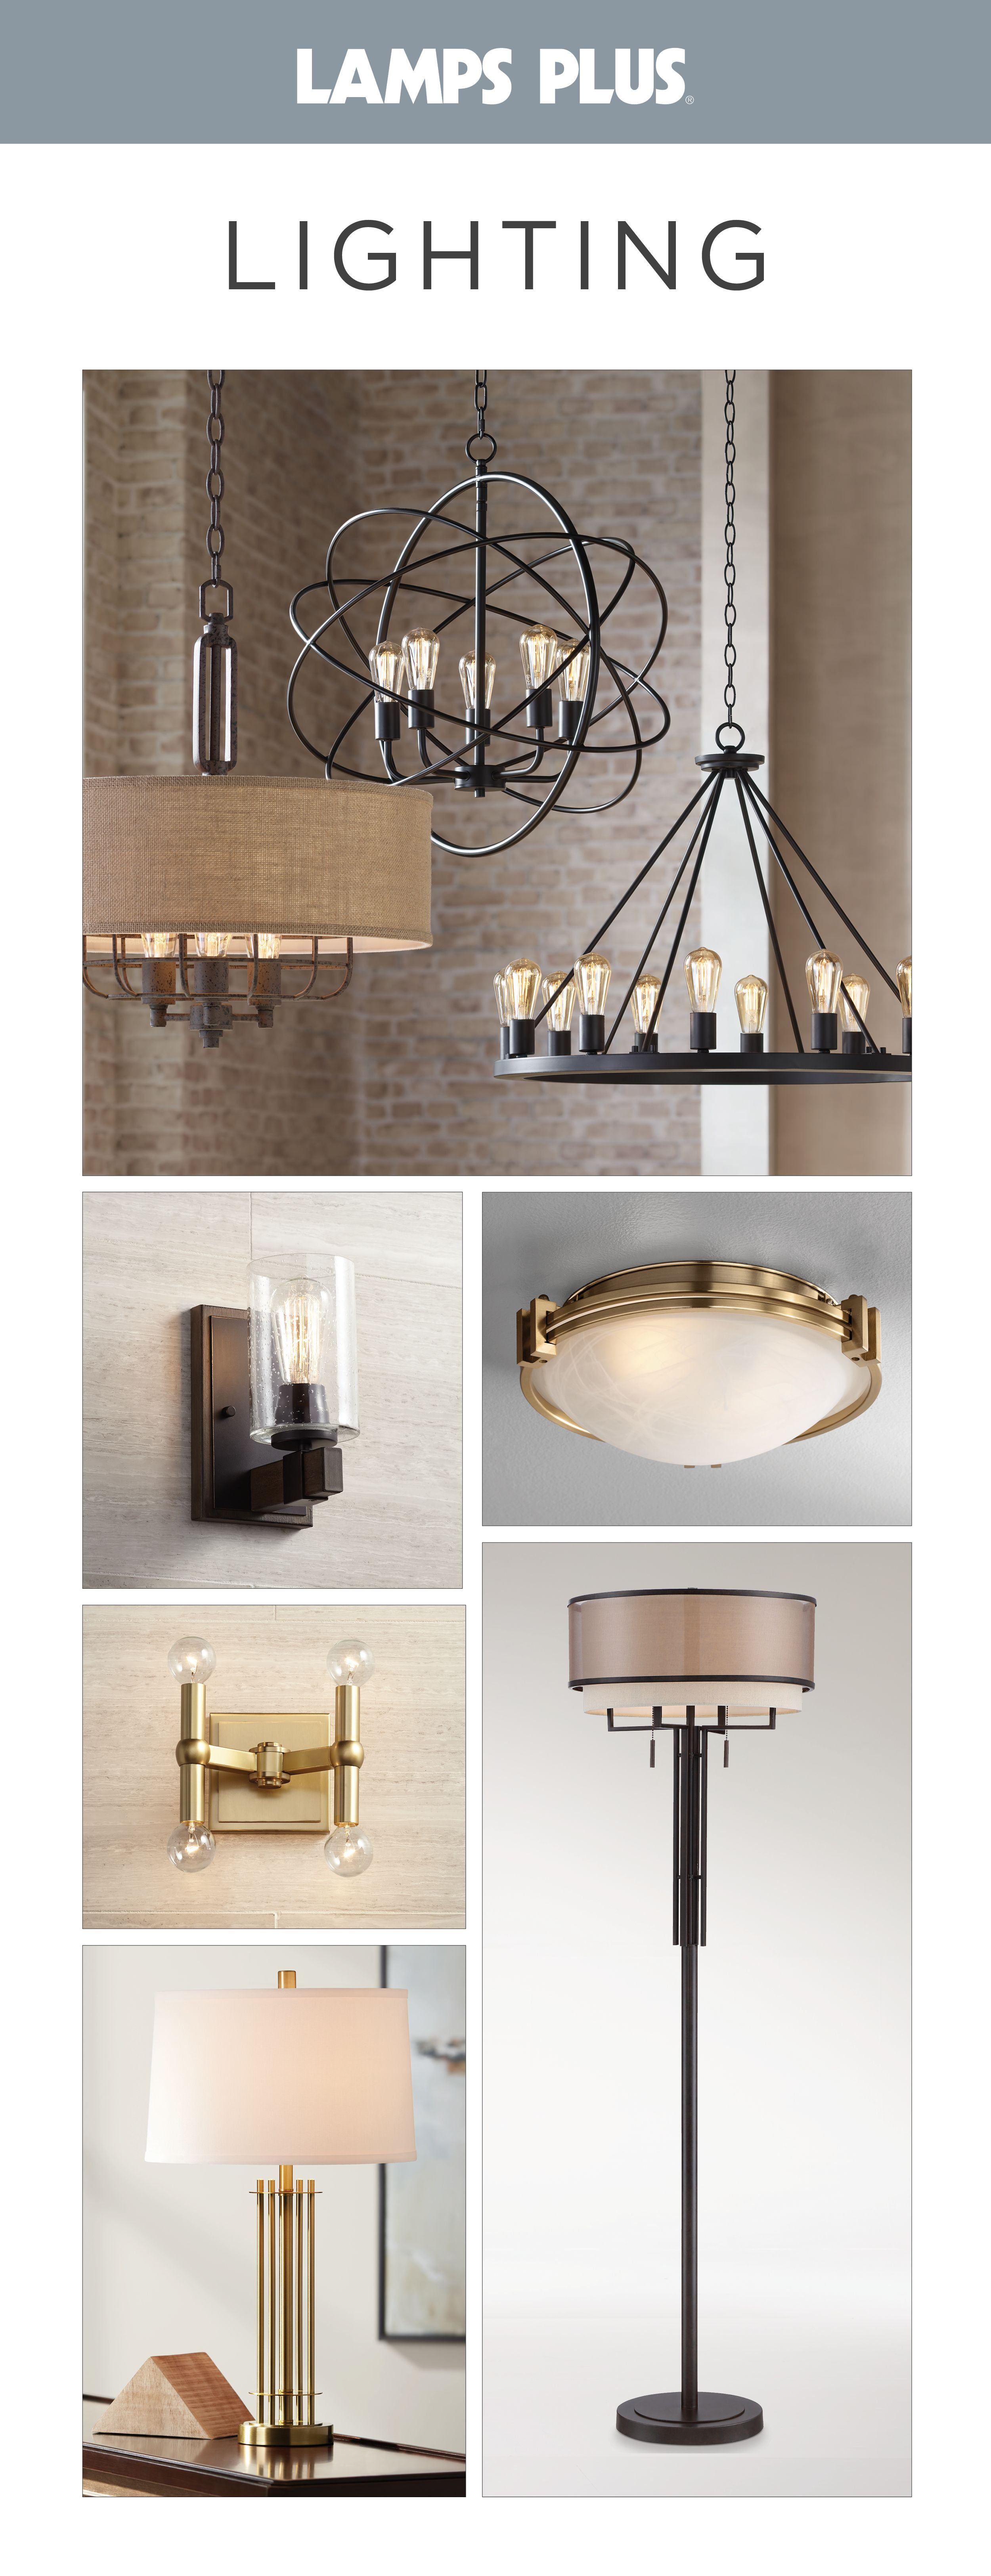 light lamps fan lights with to for pertaining sizing ideas home x plus crystal ceiling decor appealing fans